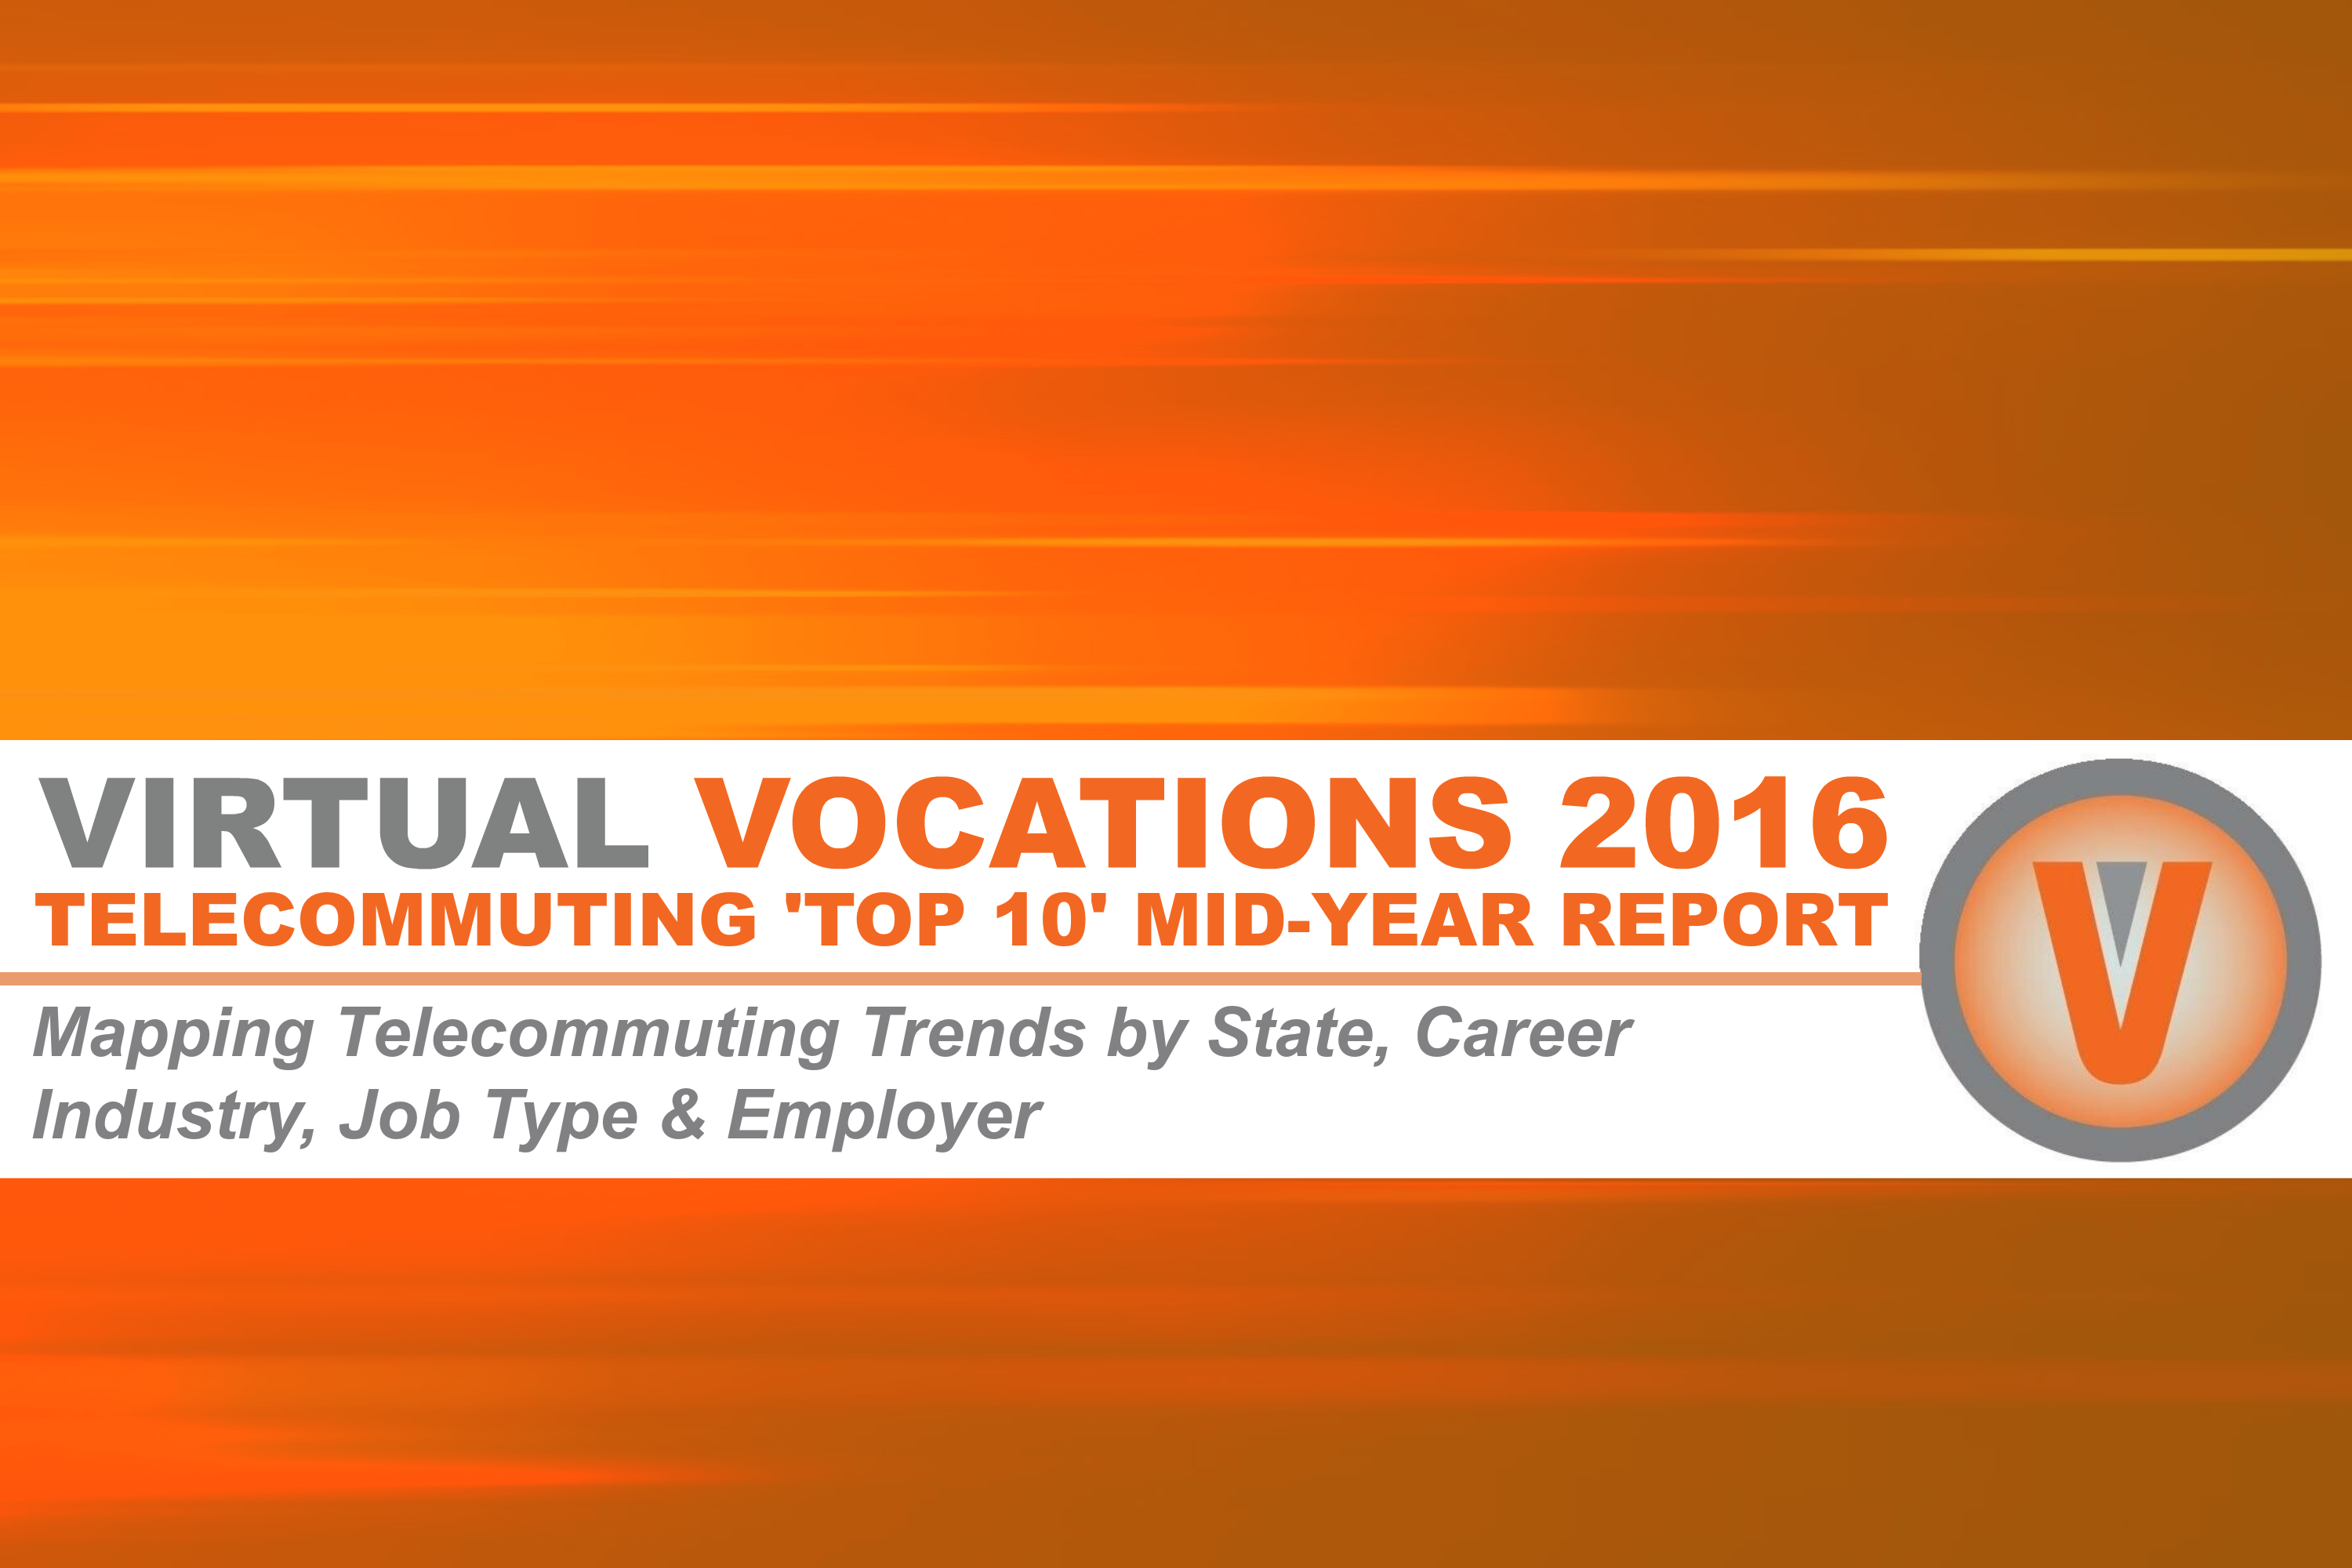 Virtual Vocations Telecommuting Top 10